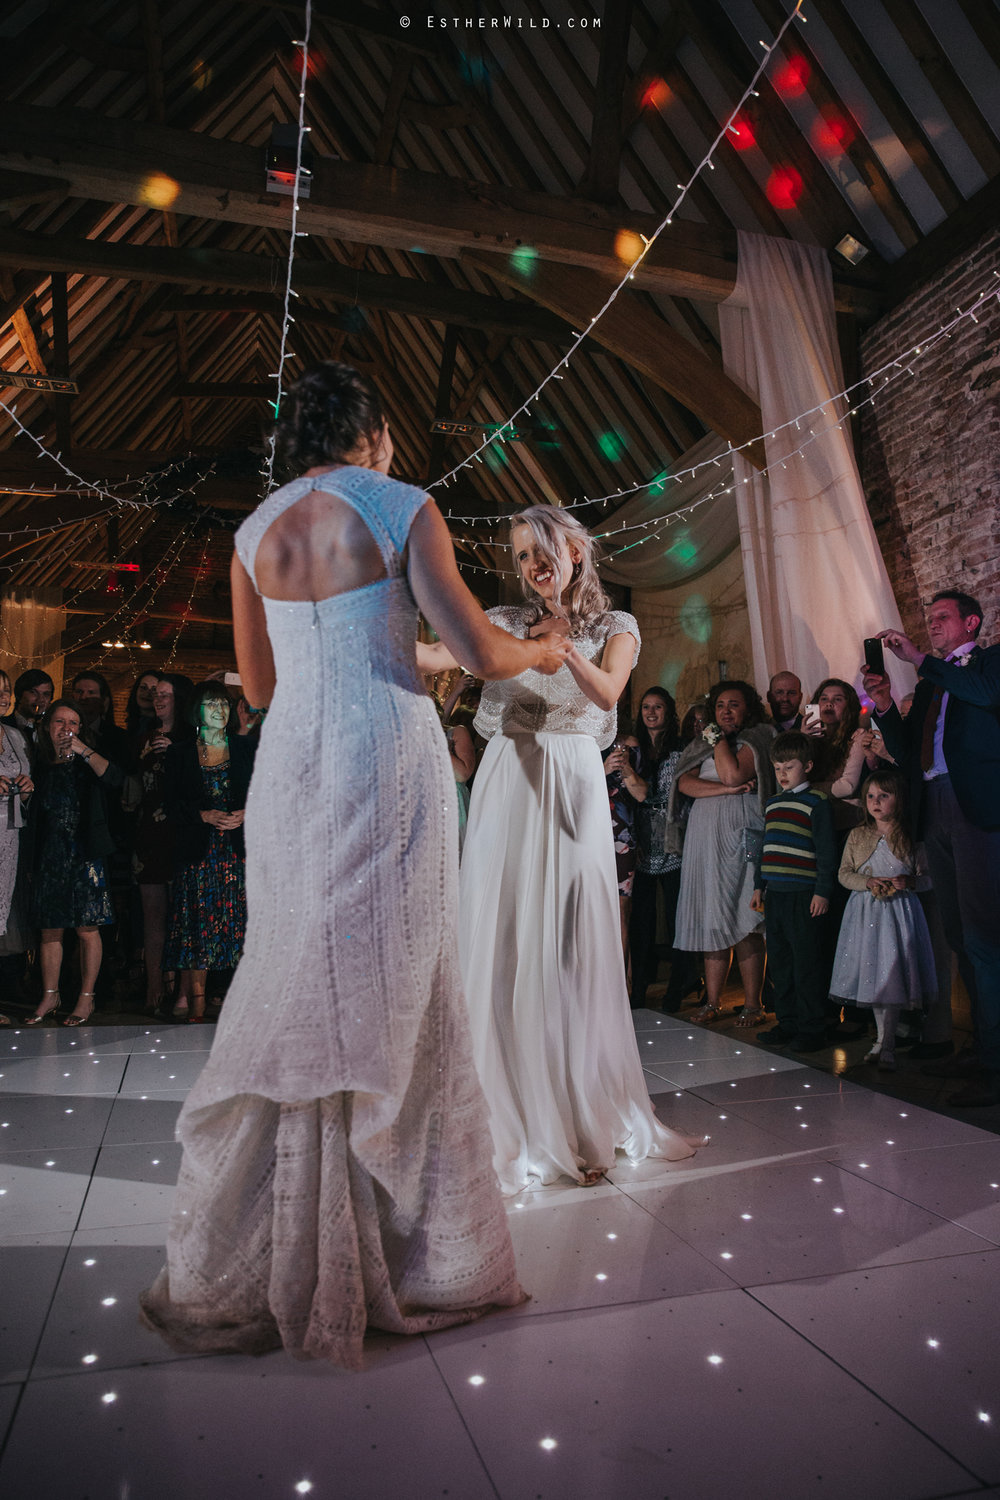 Elms_Barn_Weddings_Suffolk_Photographer_Copyright_Esther_Wild_IMG_3381.jpg